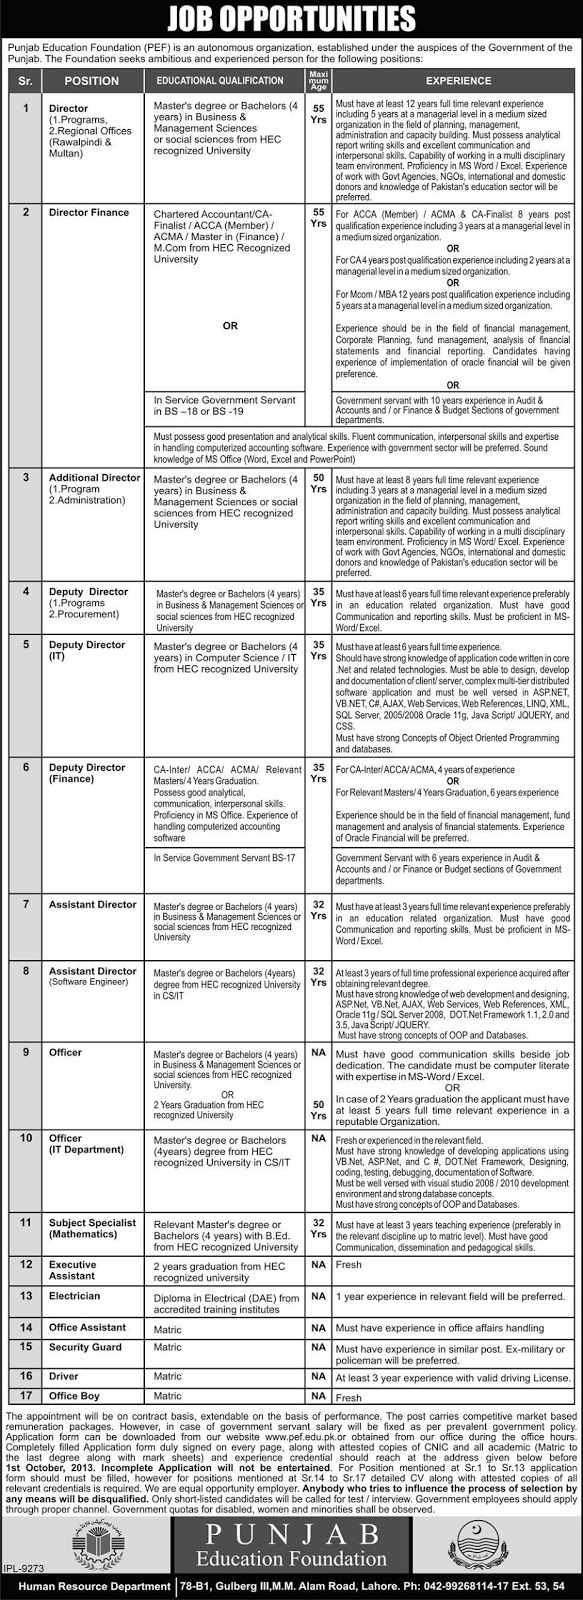 Directors, Officers, Assistant and Other Jobs in Punjab Education Foundation, Lahore